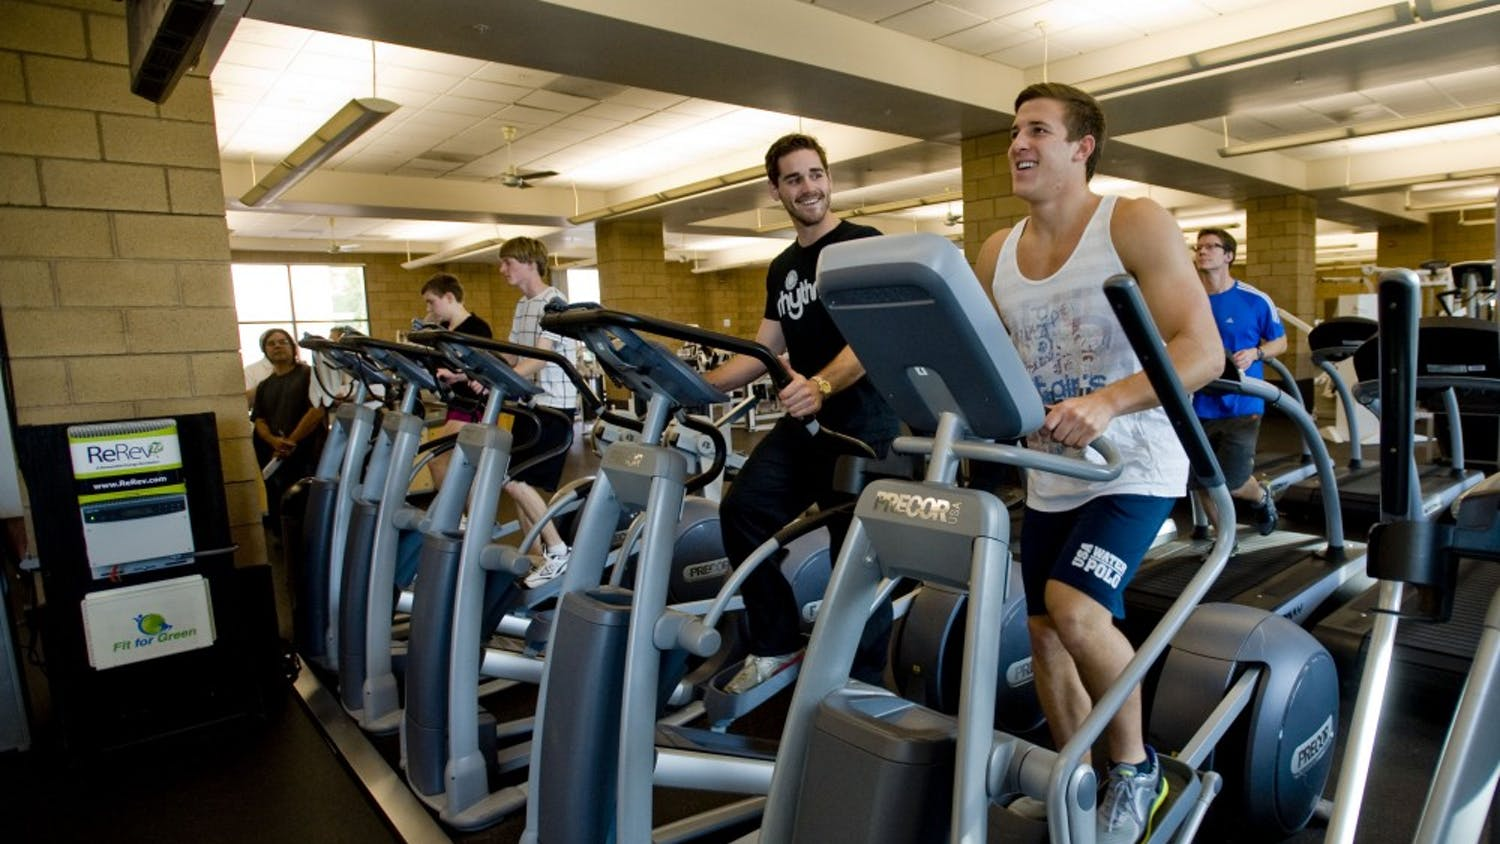 Instructor Kevin Brostoff, left, and student Jared Olivo generate electricity as they workout on elliptical trainers at at the Anteater Recreation Center at the University of California, Irvine, on January 20, 2012. Using gym equipment, Fit for Green makes a game out of the creation of renewable energy in the gym, using social media as a platform. (Paul Rodriguez/Orange County Register/MCT)